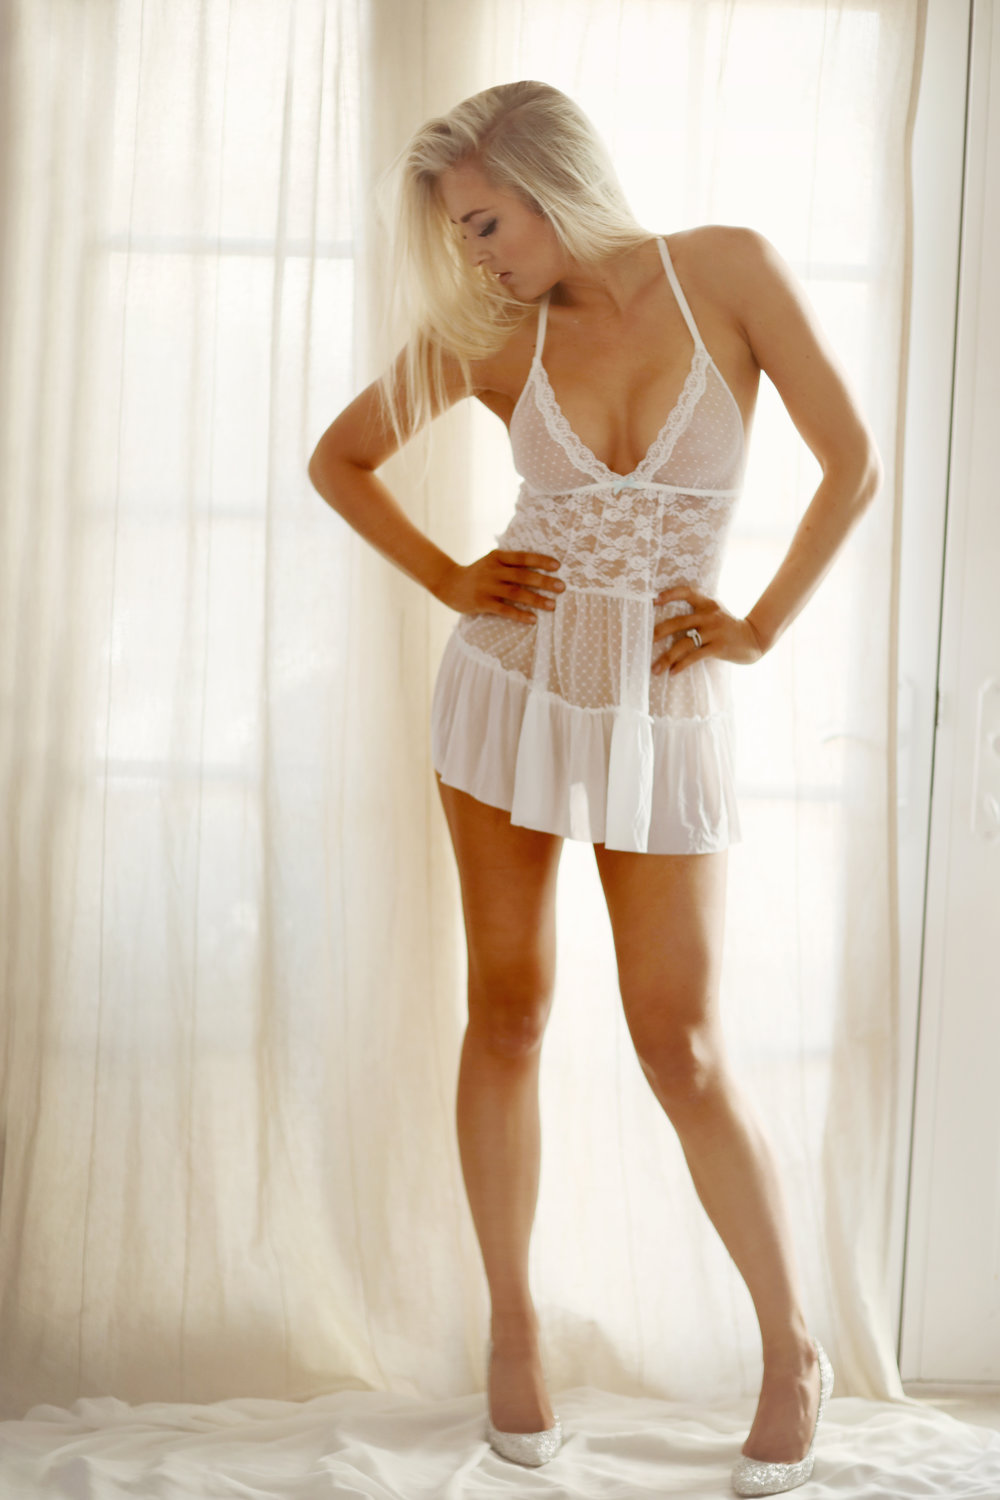 Girl wearing a white see through skirted teddy and white high heels for her boudoir portrait.